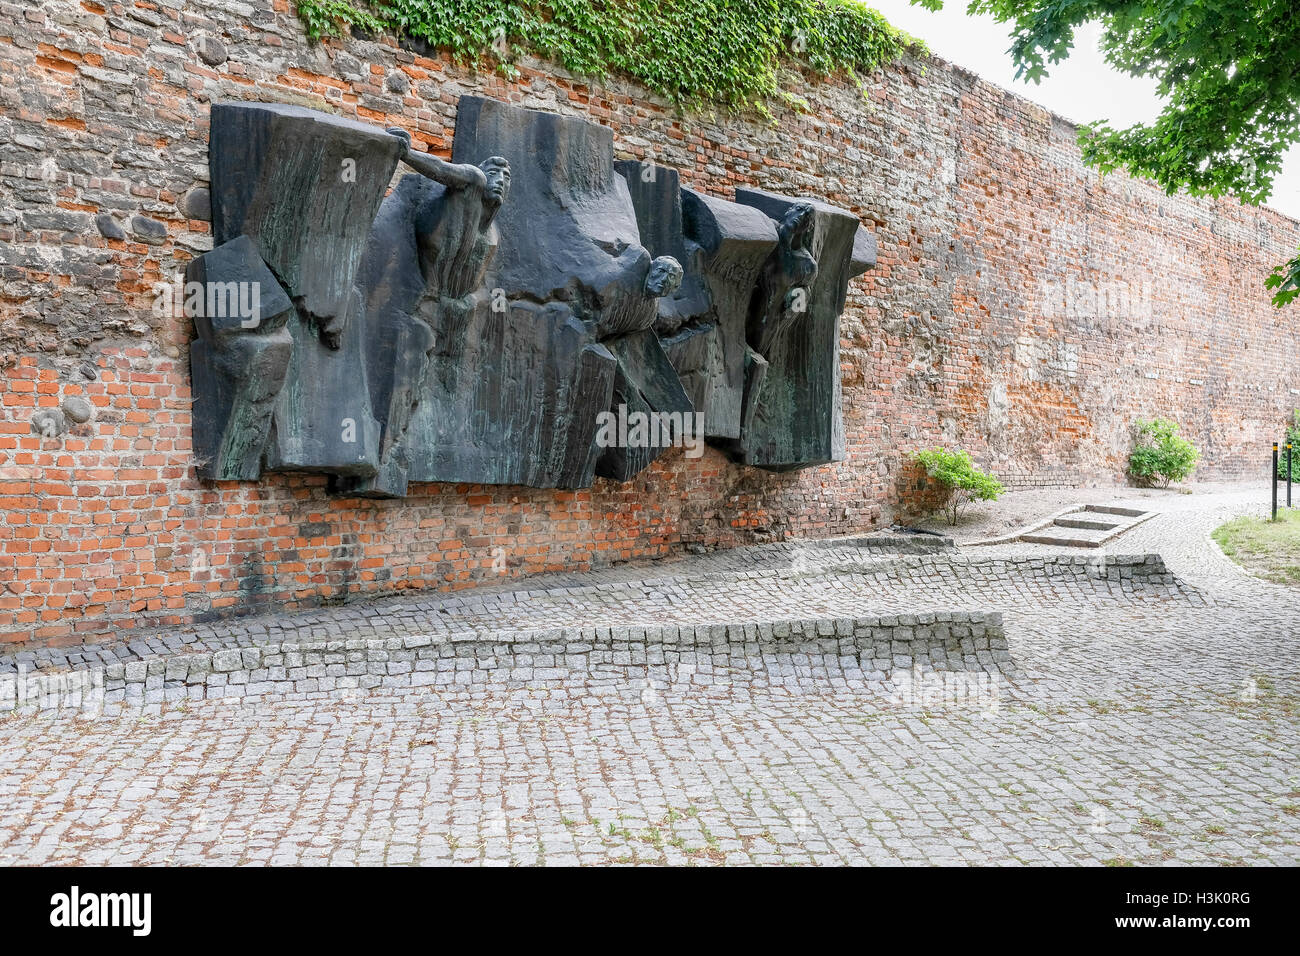 Courtyard of Gdansk postoffice where Nazi's executed resistance group. - Stock Image